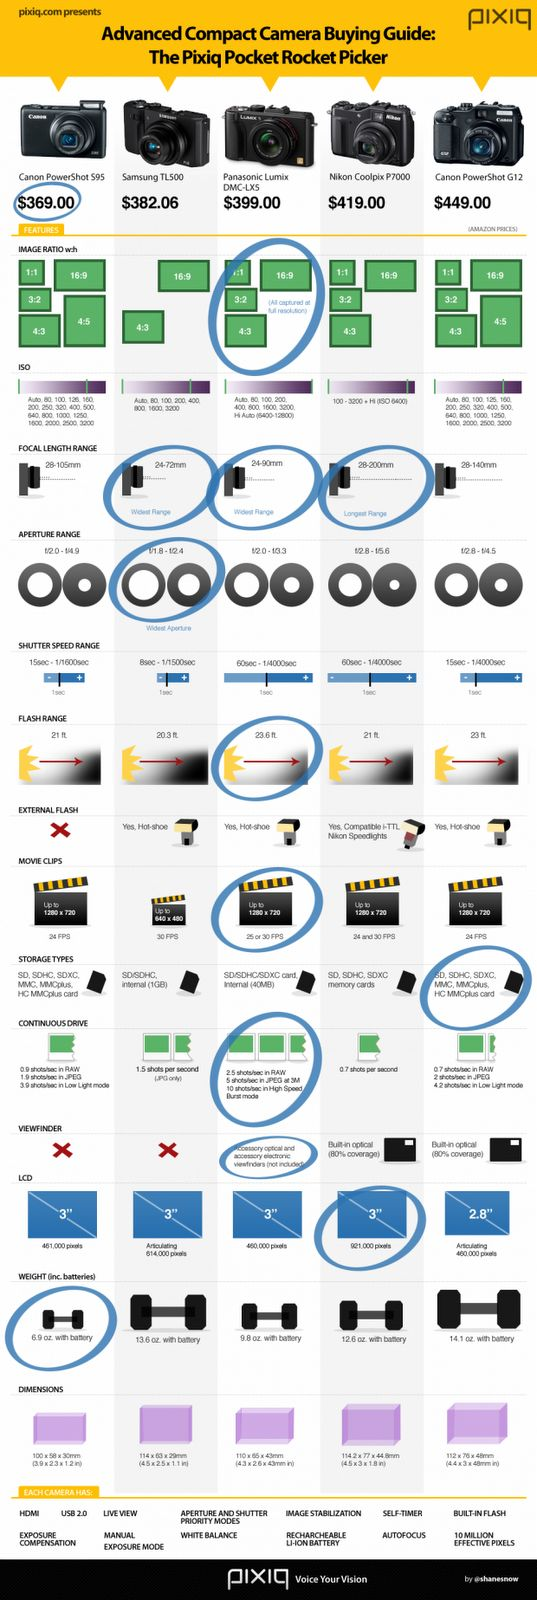 Serious and amateur photographers often pride themselves on their cameras. This infographic compares different cameras and acts as an advanced compact